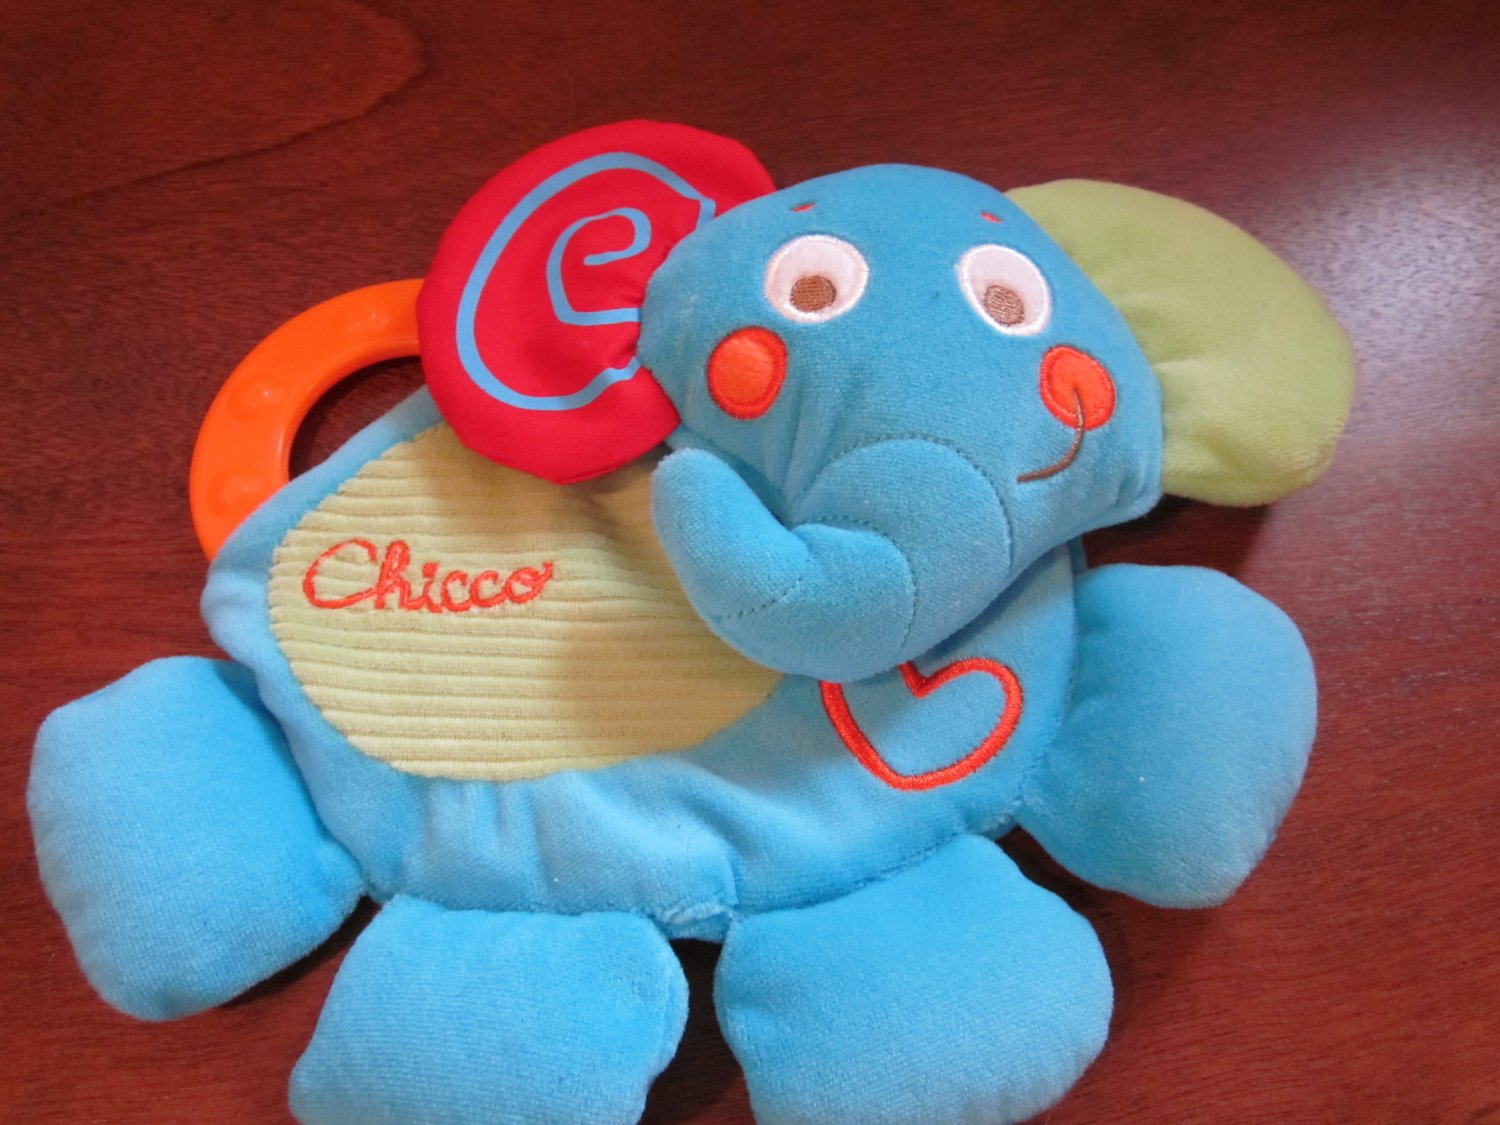 Chicco Blue Elephant activity toy Teether